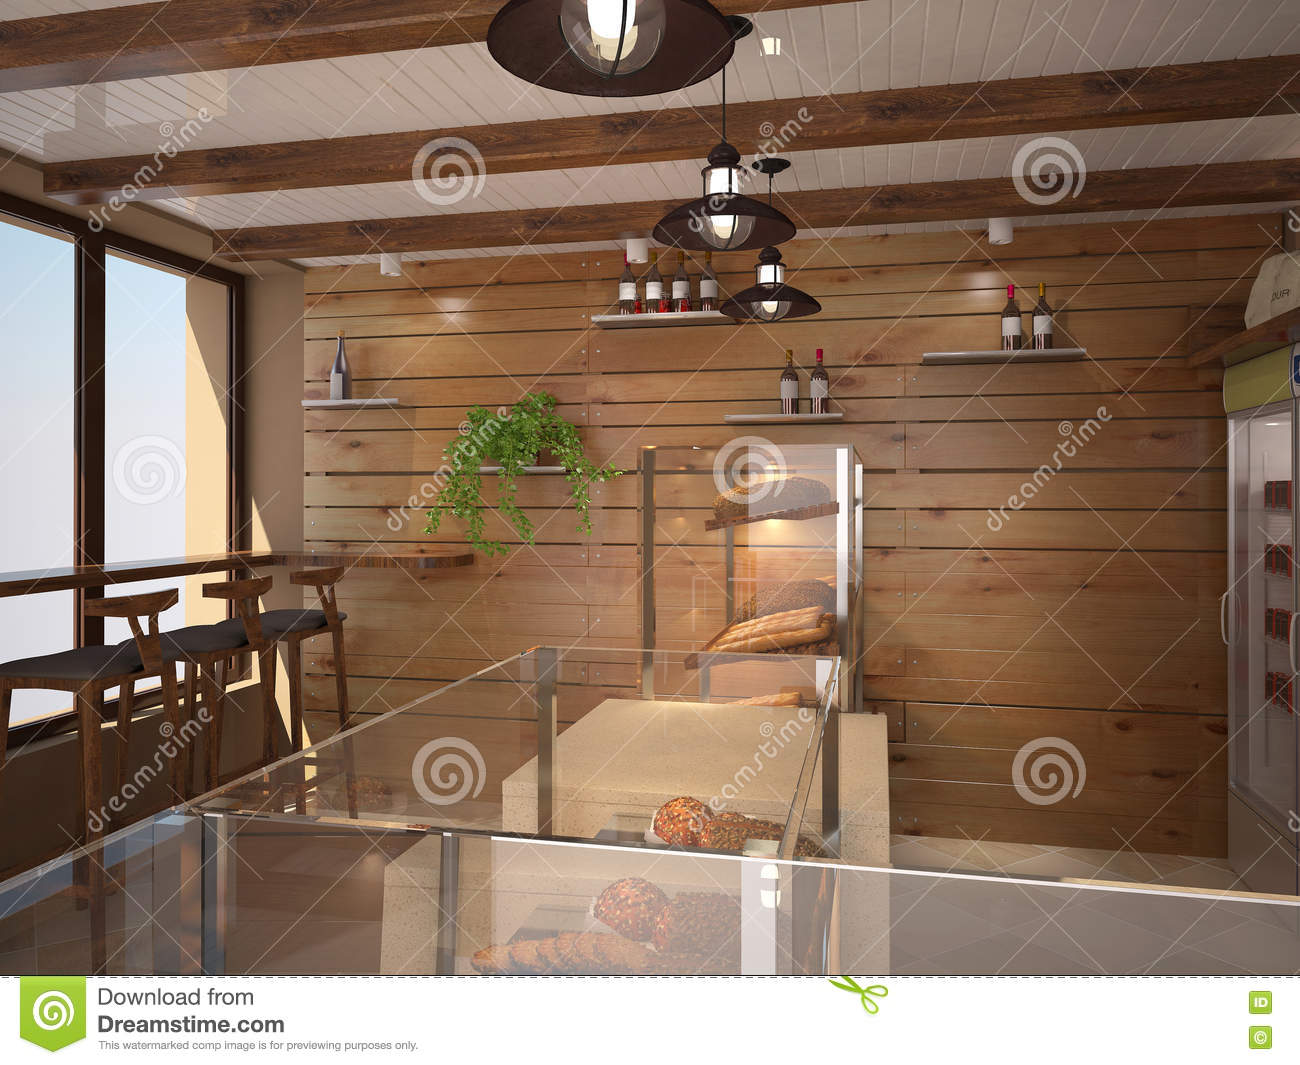 Visualization of the interior 3d rendering royalty free for Interior decorating visualizer